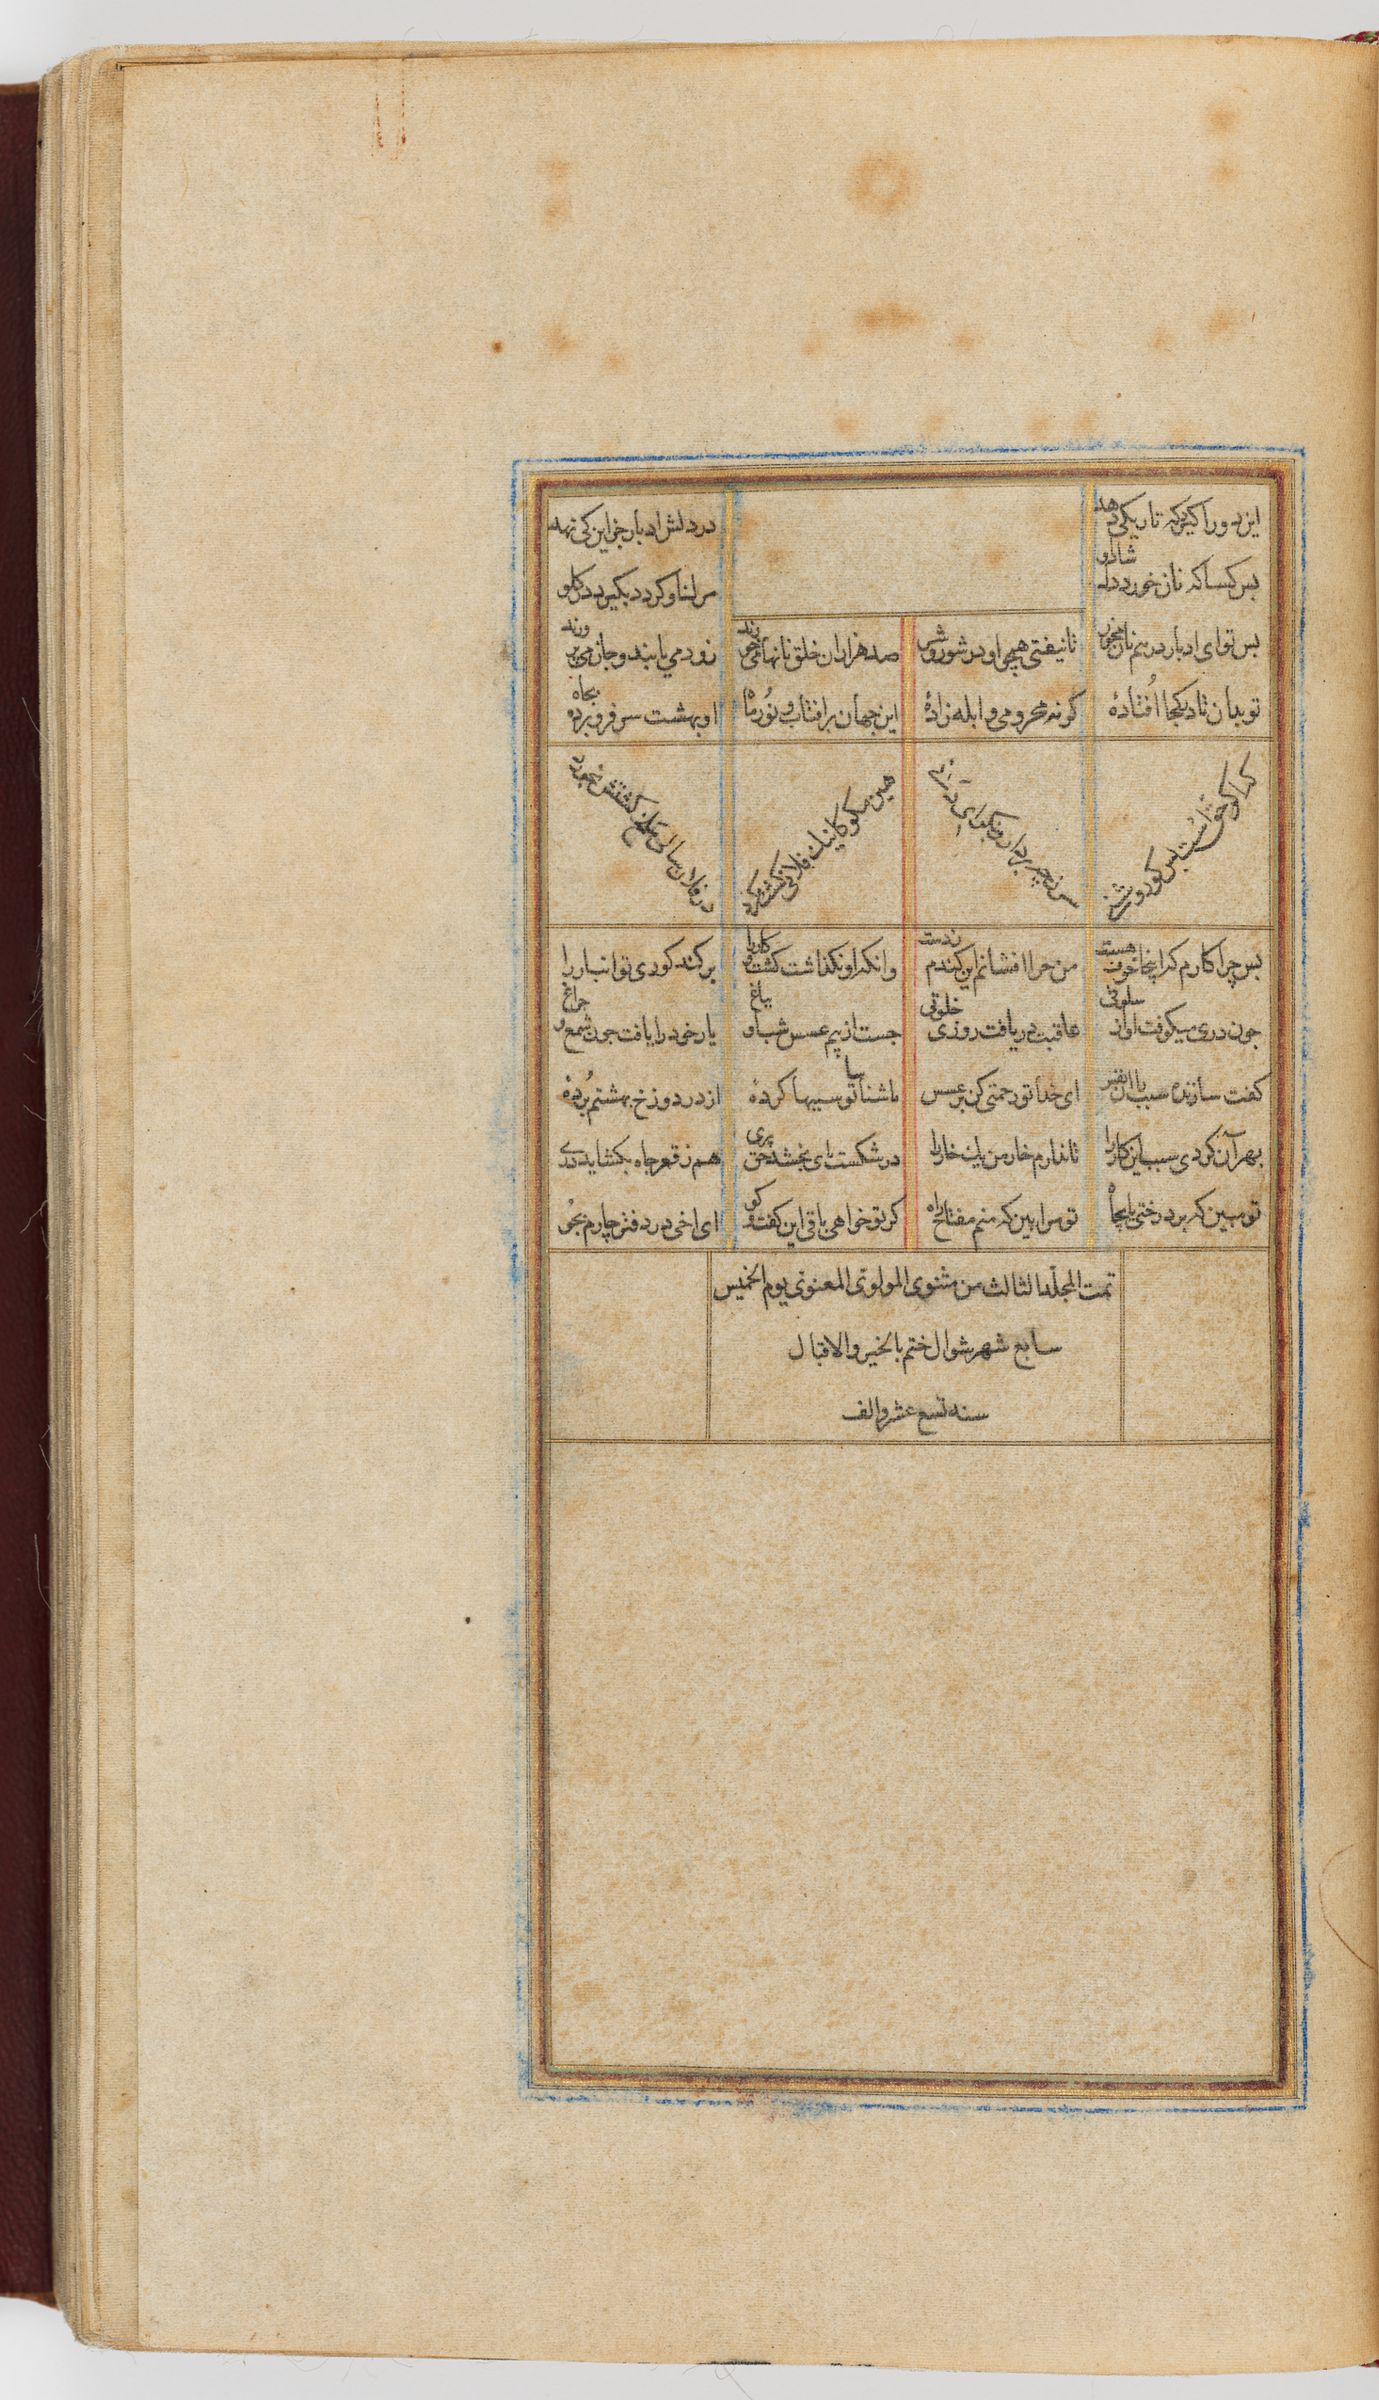 Colophon Of The Third Section (Colophon Recto; Blank Verso Of Folio 144), From A Manuscript Of The Mathnavi Ma'navi By Maulana Jalal Al-Din Rumi